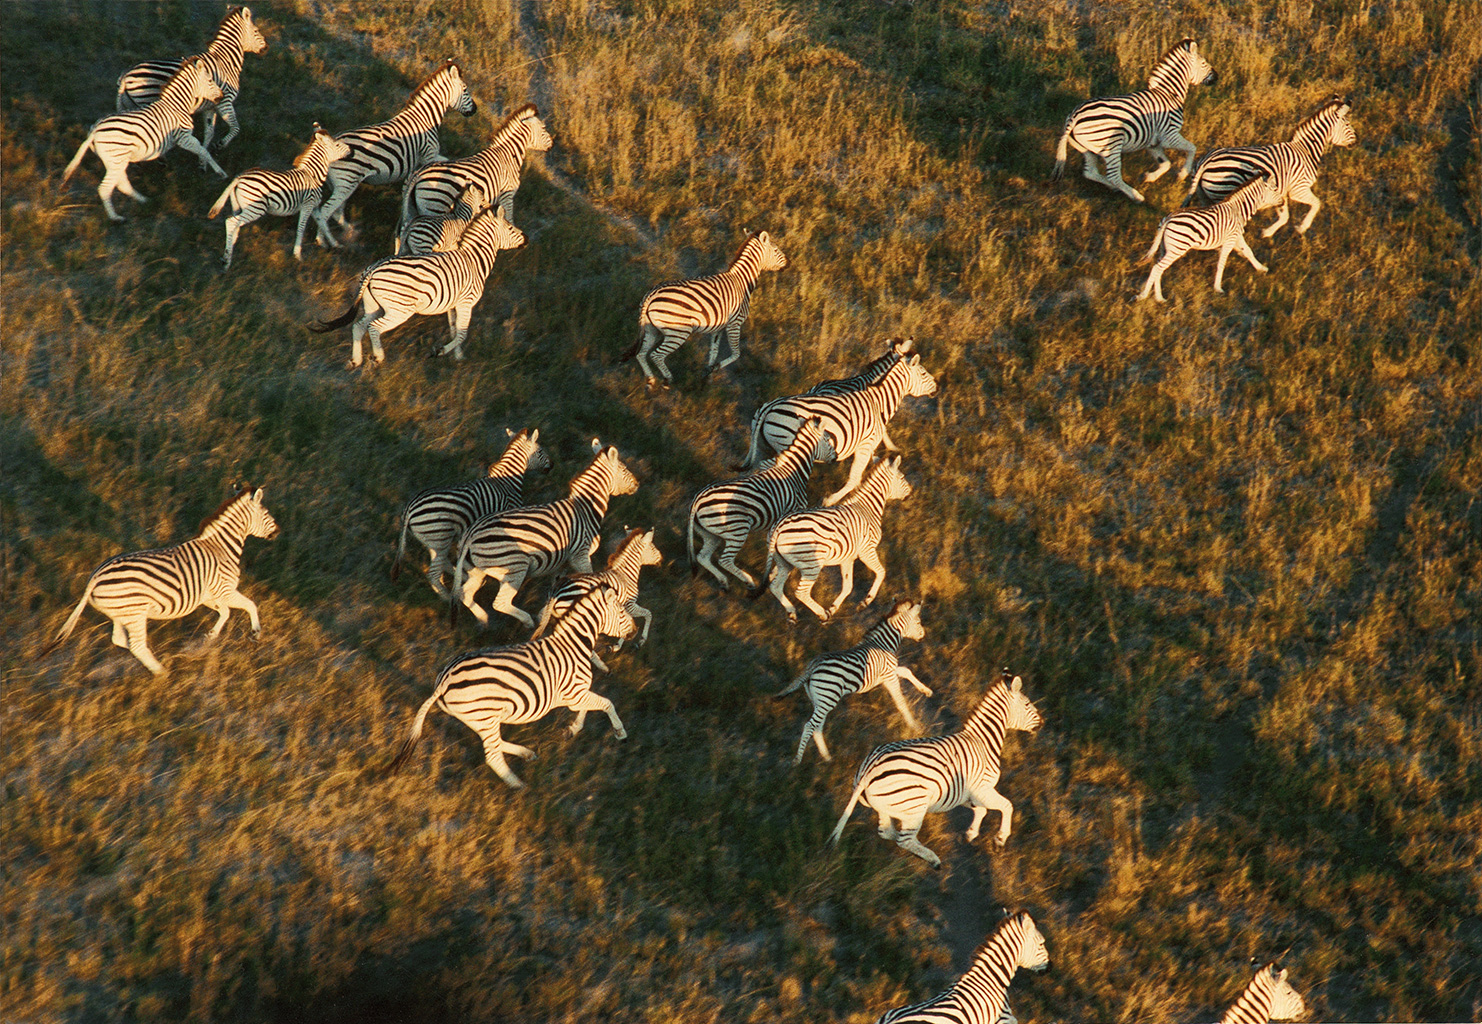 Jacks-Camp-Botswana-running-zebra